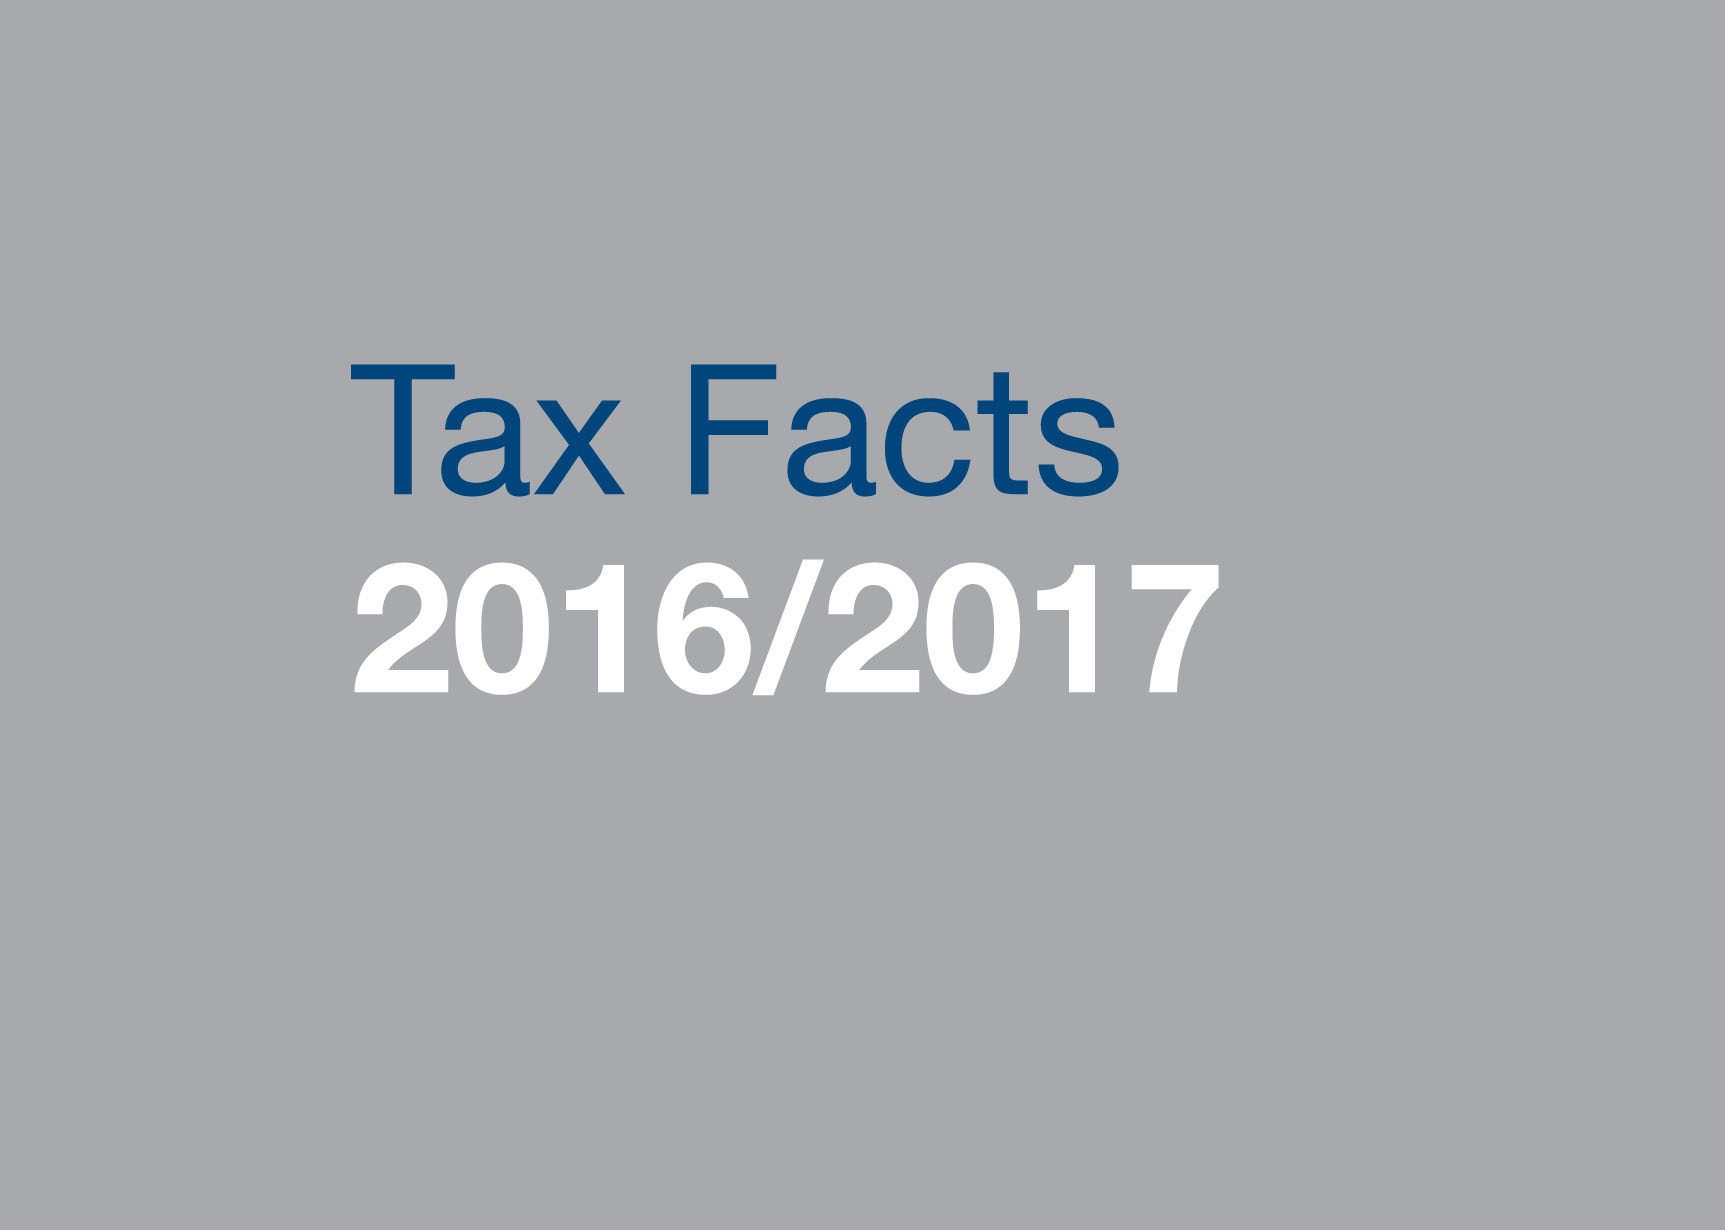 Tax Facts 2016/17